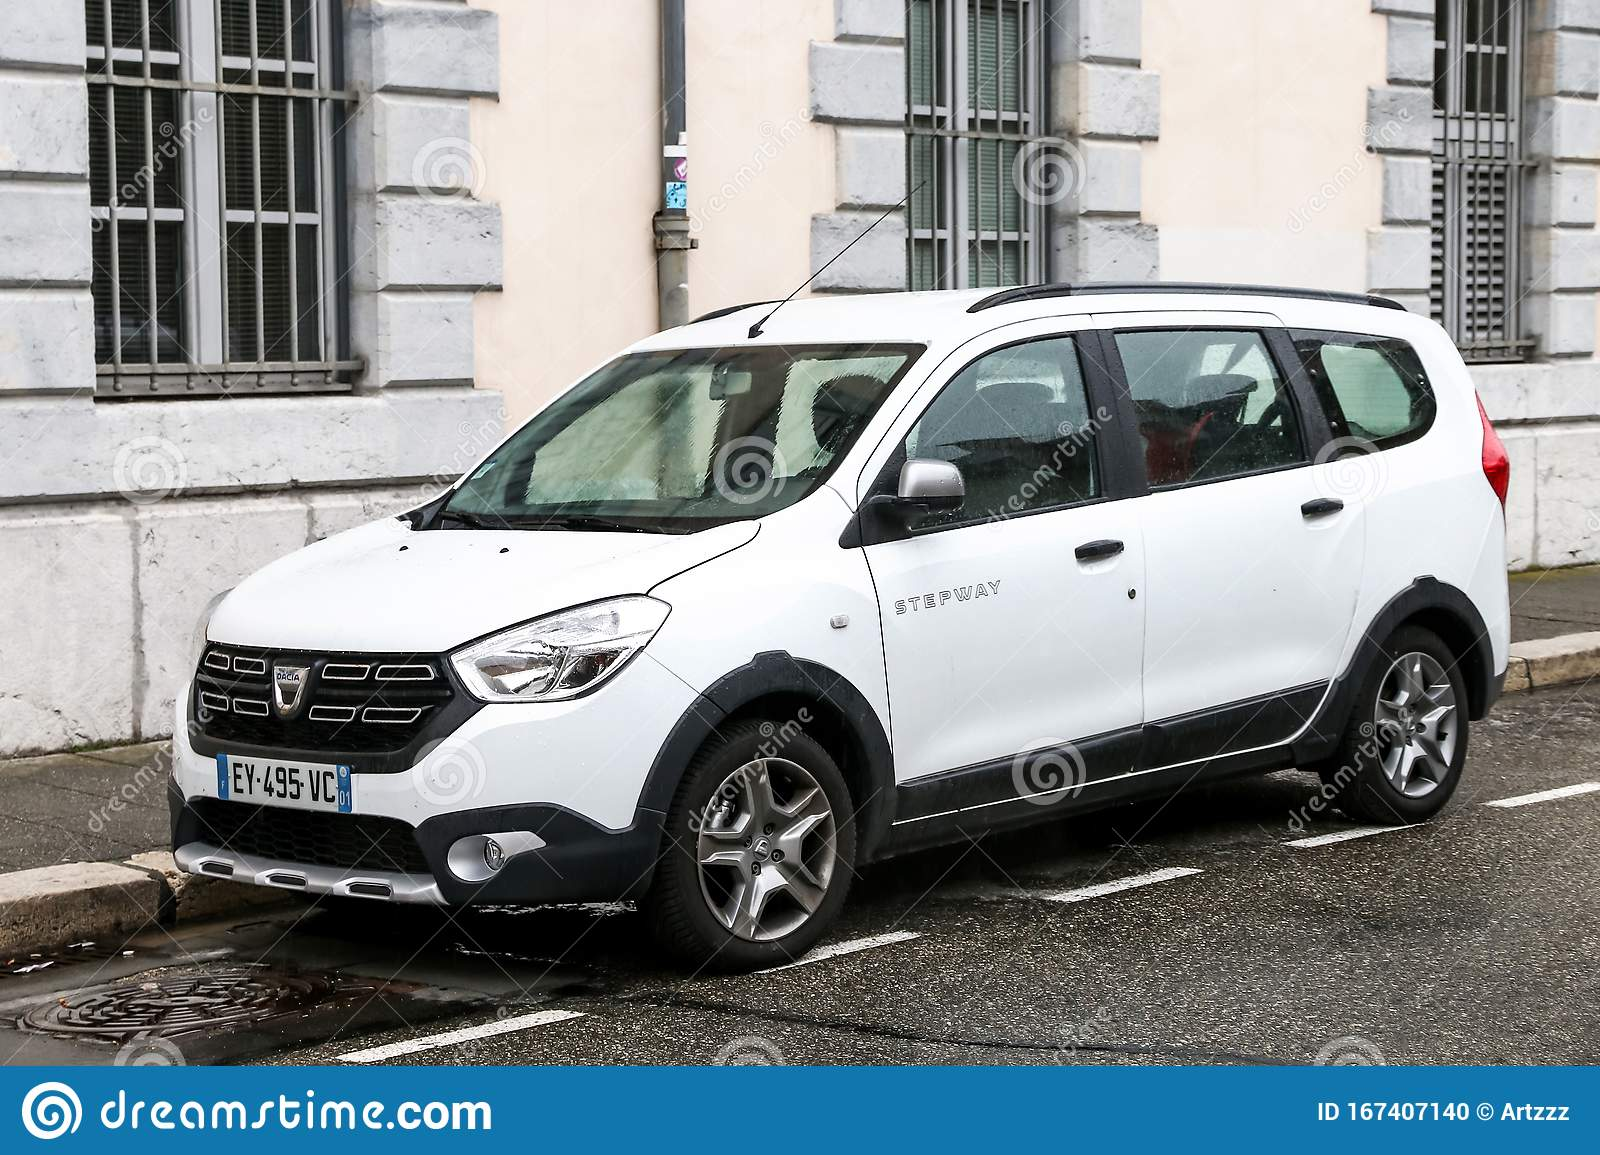 https www dreamstime com dacia lodgy stepway grenoble france march white wd van city street image167407140